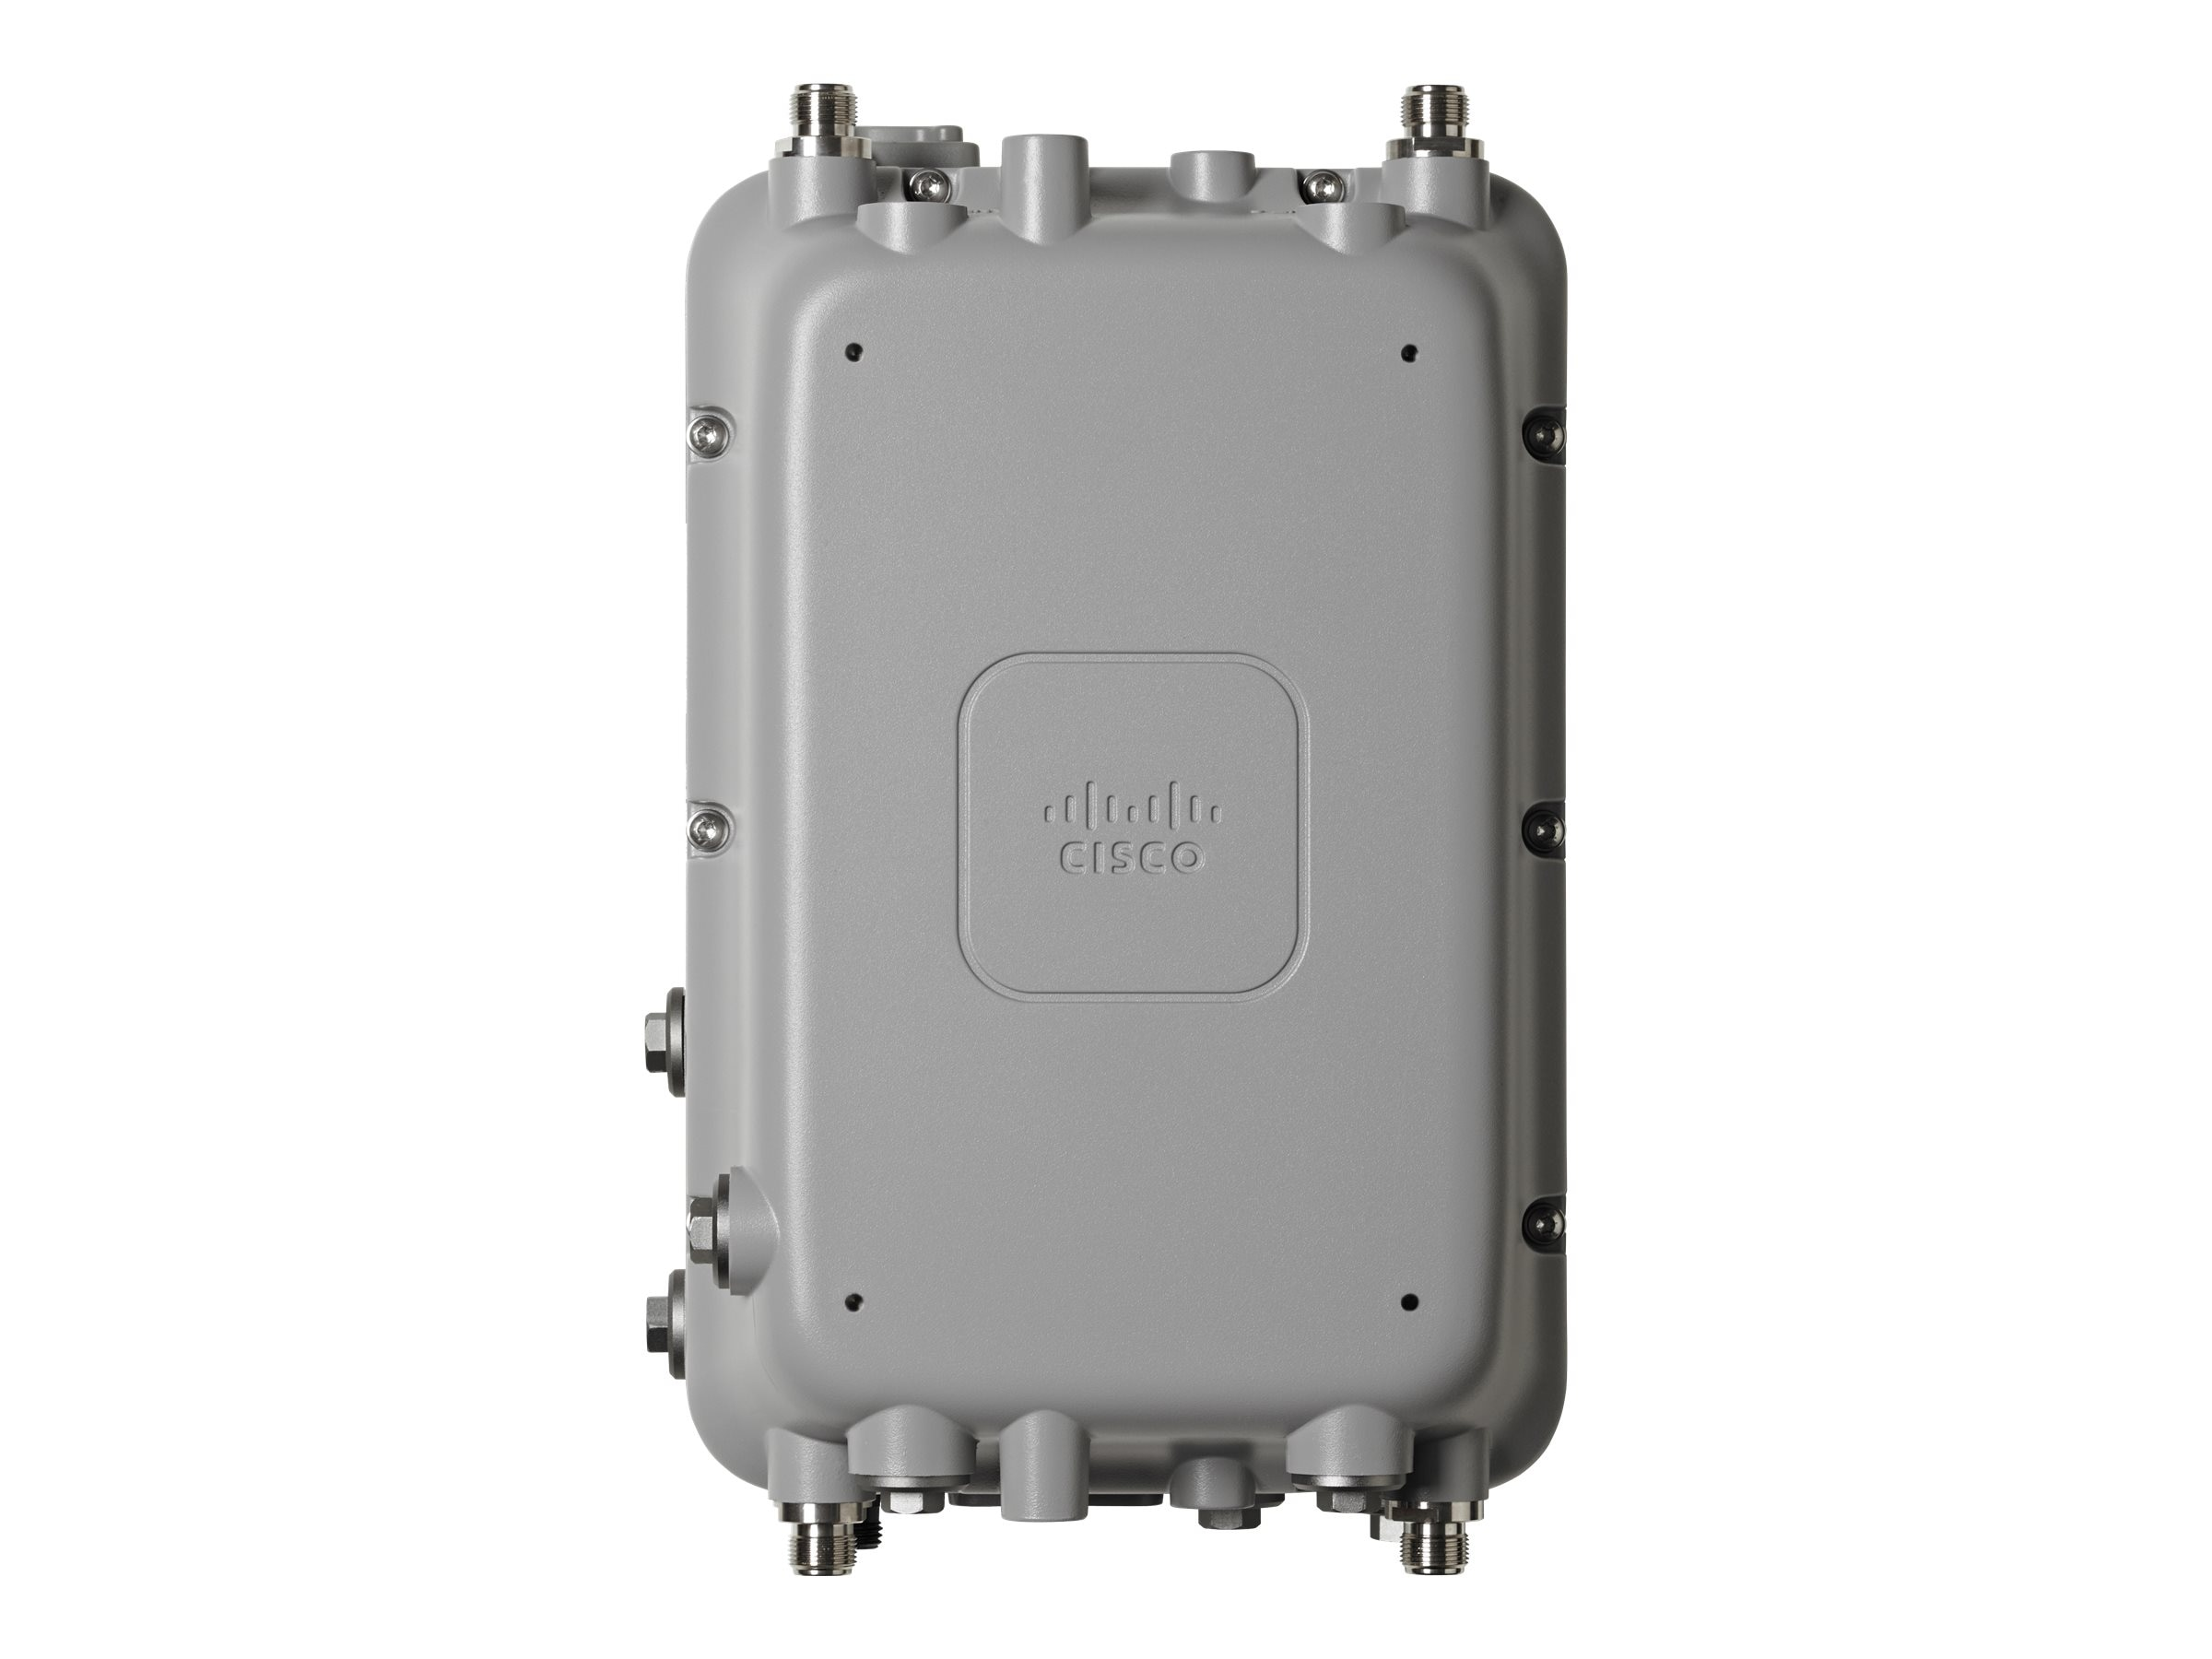 Cisco AIR-AP1572EAC-T-K9 Image 2